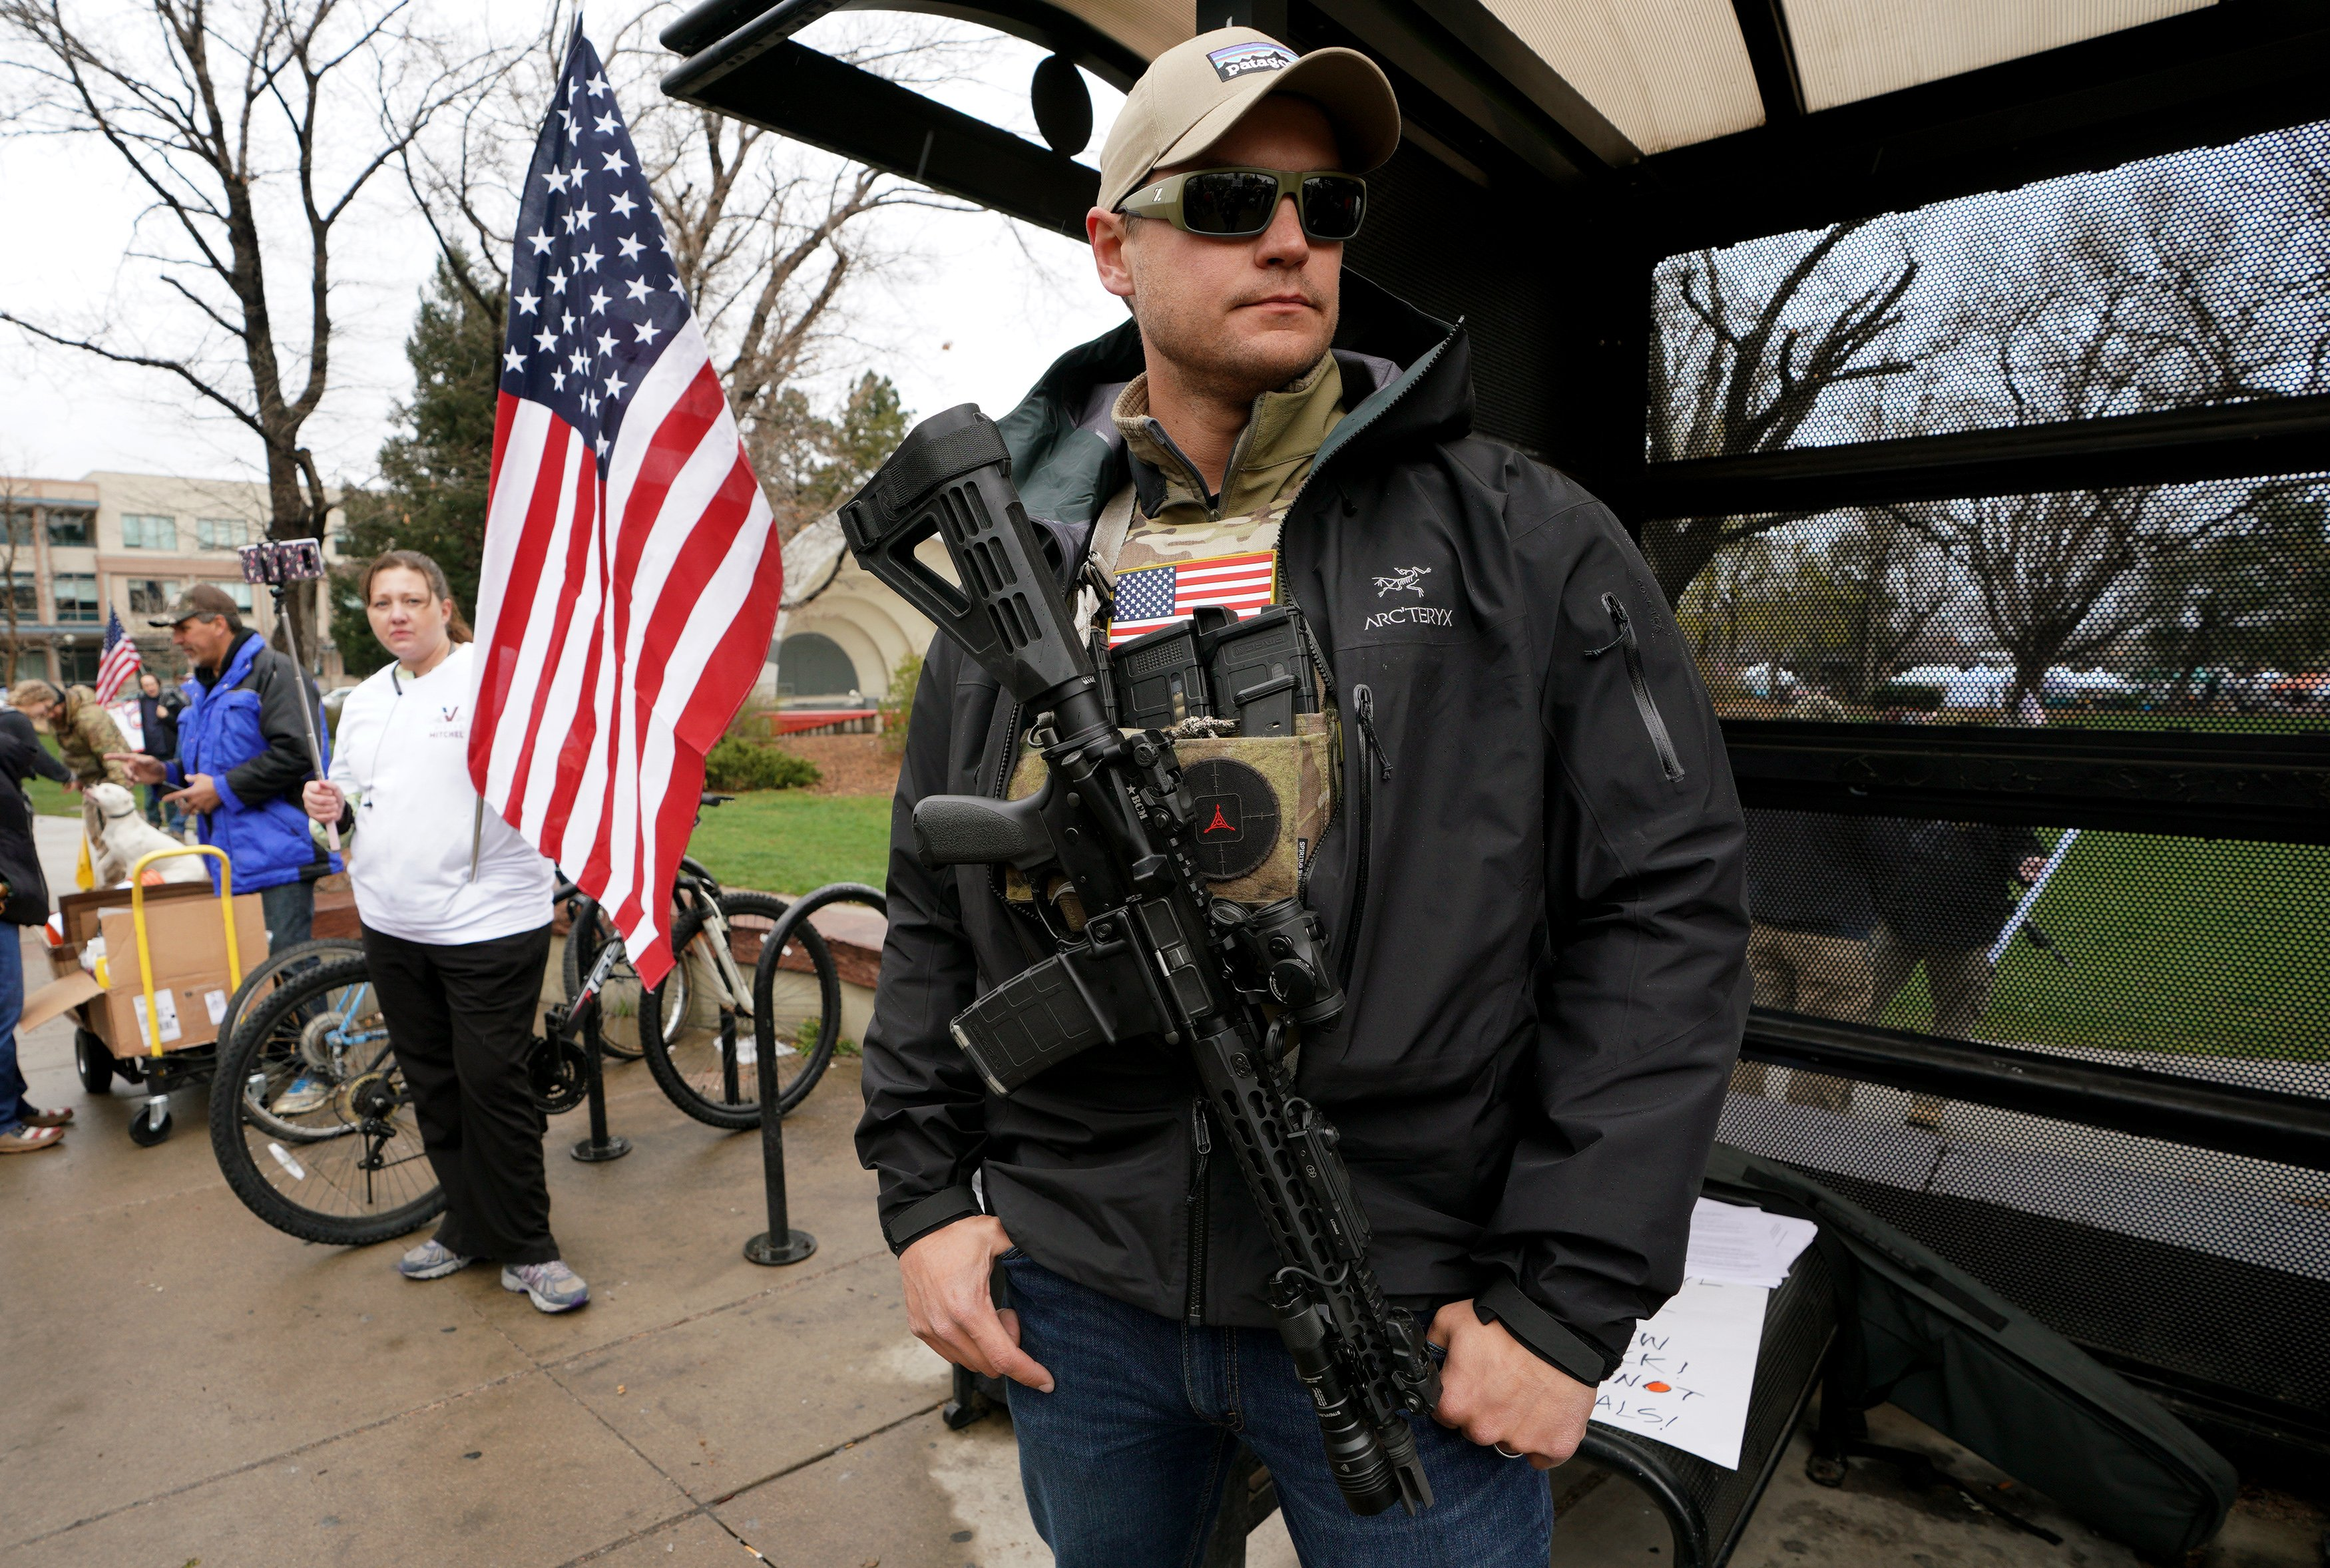 BOULDER, CO - APRIL 21: Marty Combs openly carries his AR-15 pistol at a pro gun rally on April 21, 2018 in Boulder, Colorado. The city of Boulder is considering enacting an ordinance that will ban the sale and possession of assault weapons in the city. (Photo by Rick T. Wilking/Getty Images)